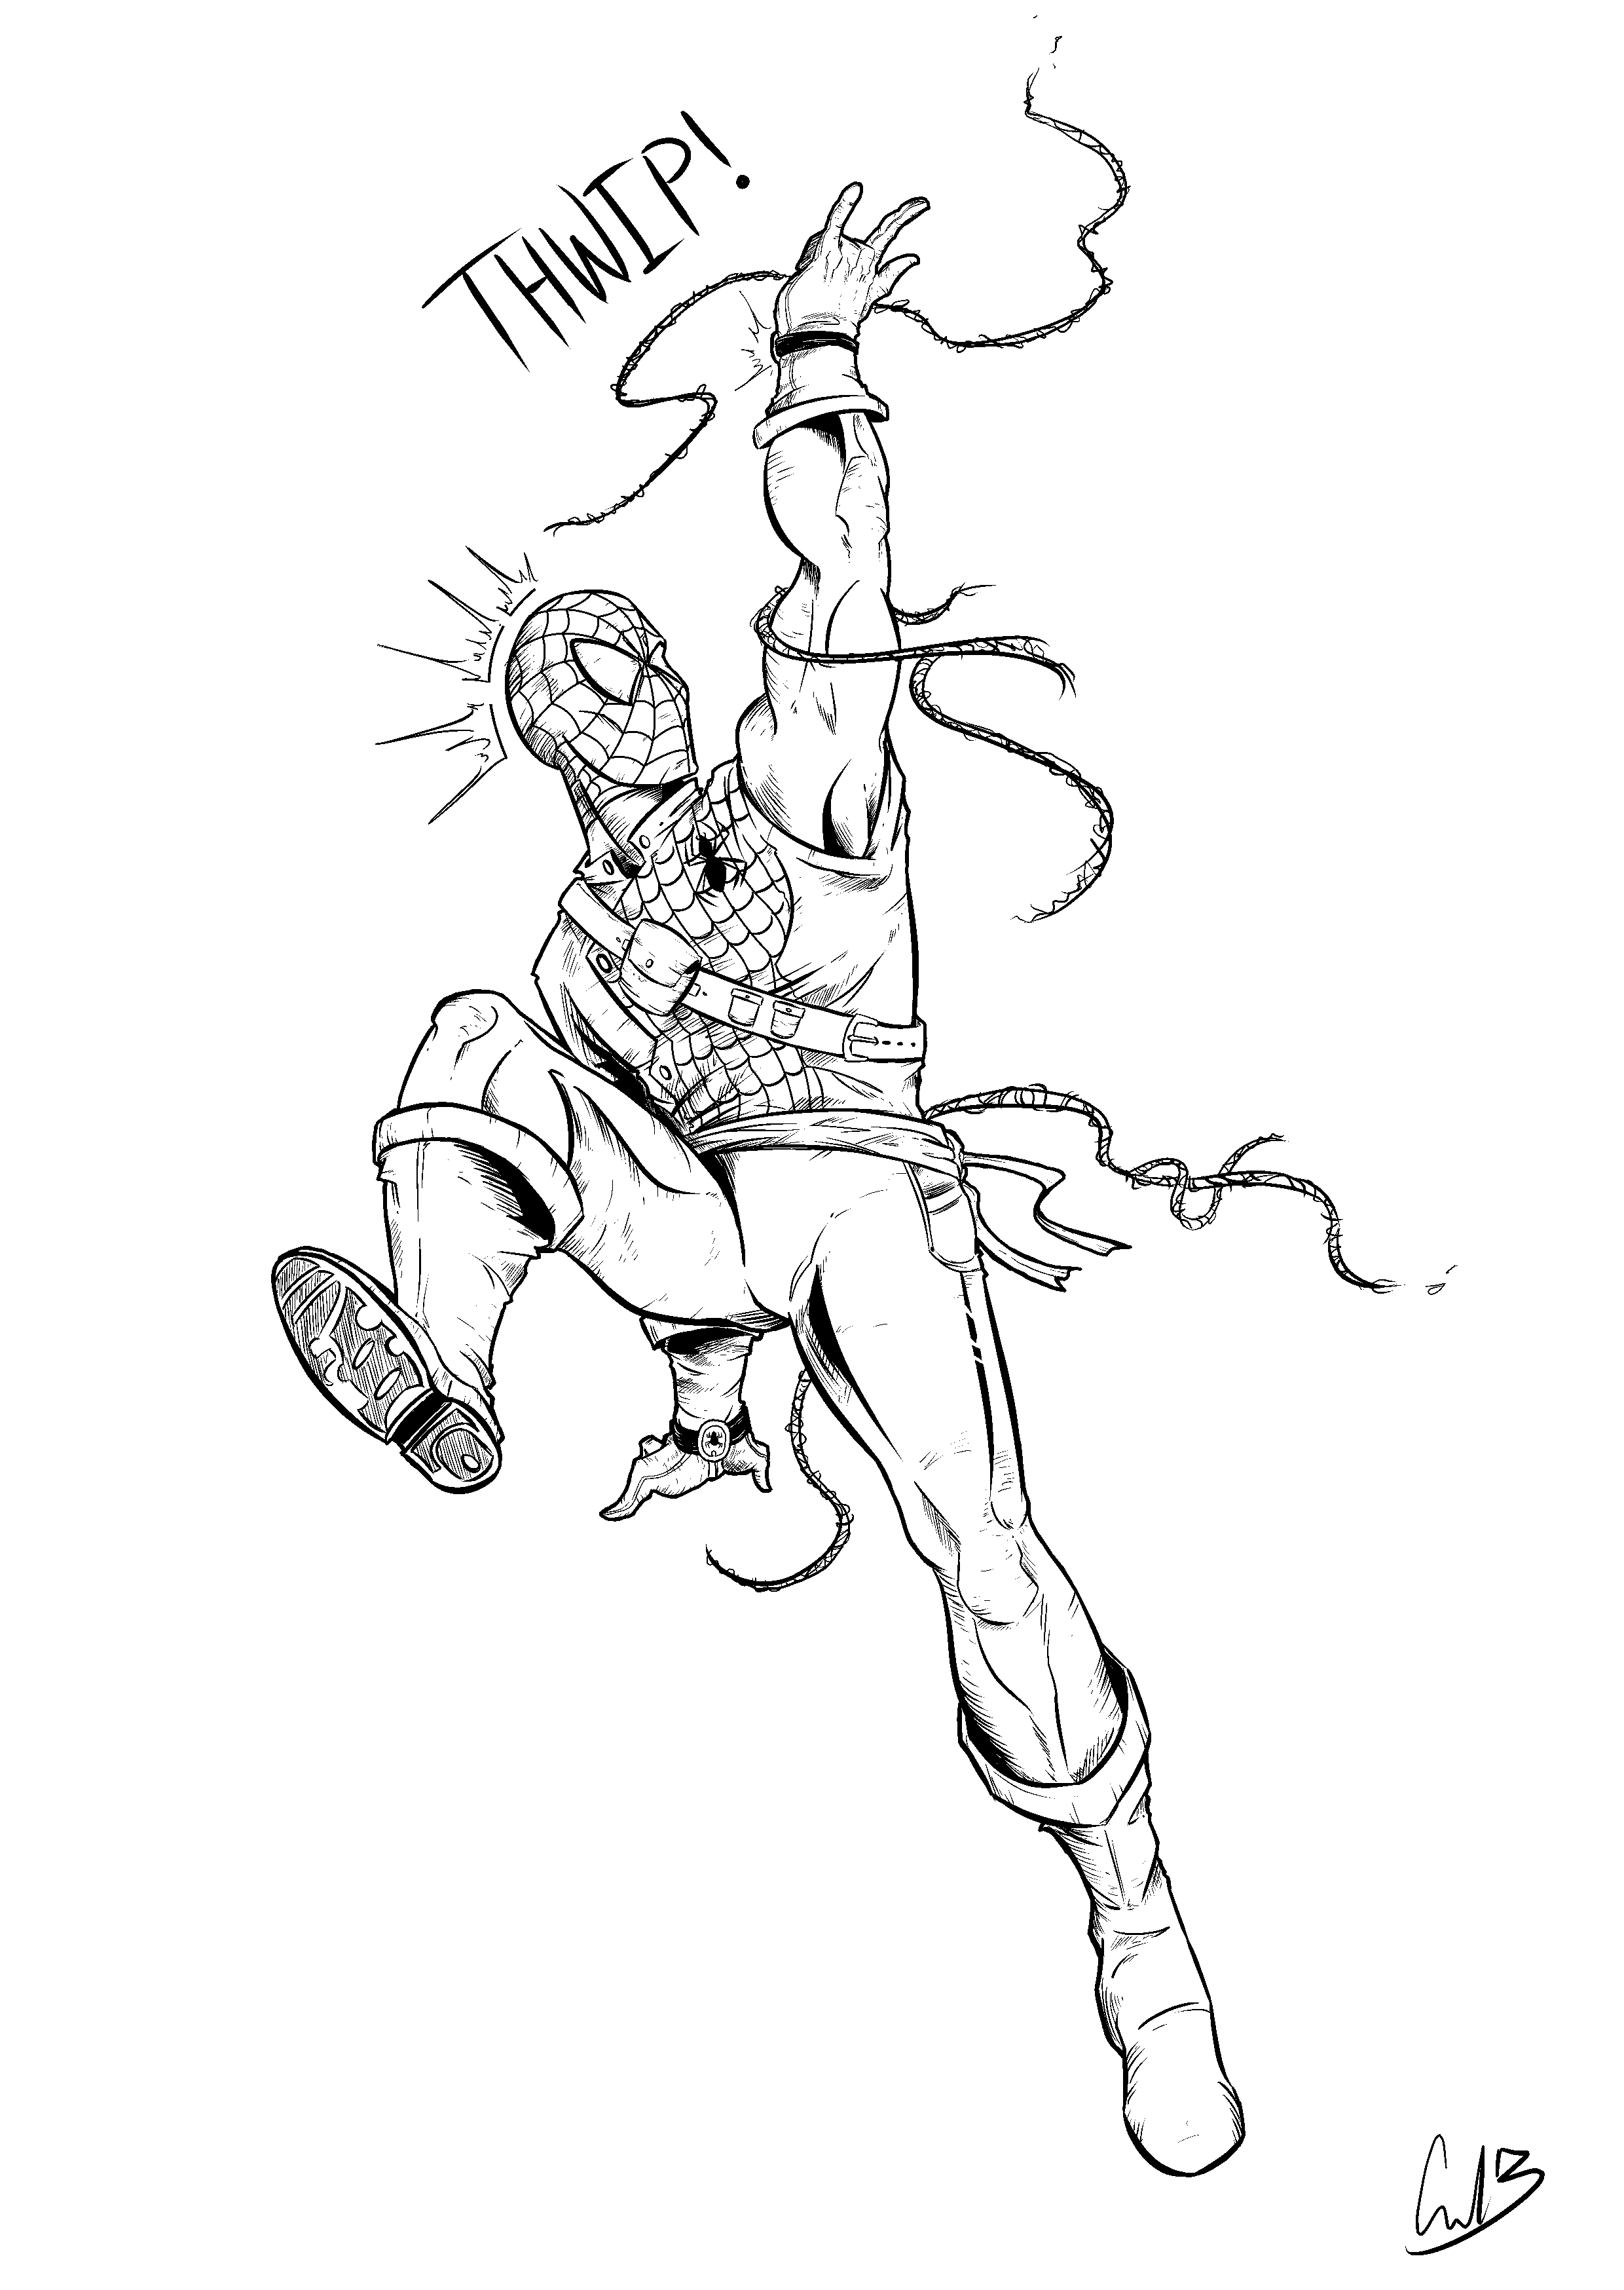 2480x3496 Here's An Inked And Rendered Version Of The Spiderman Drawing